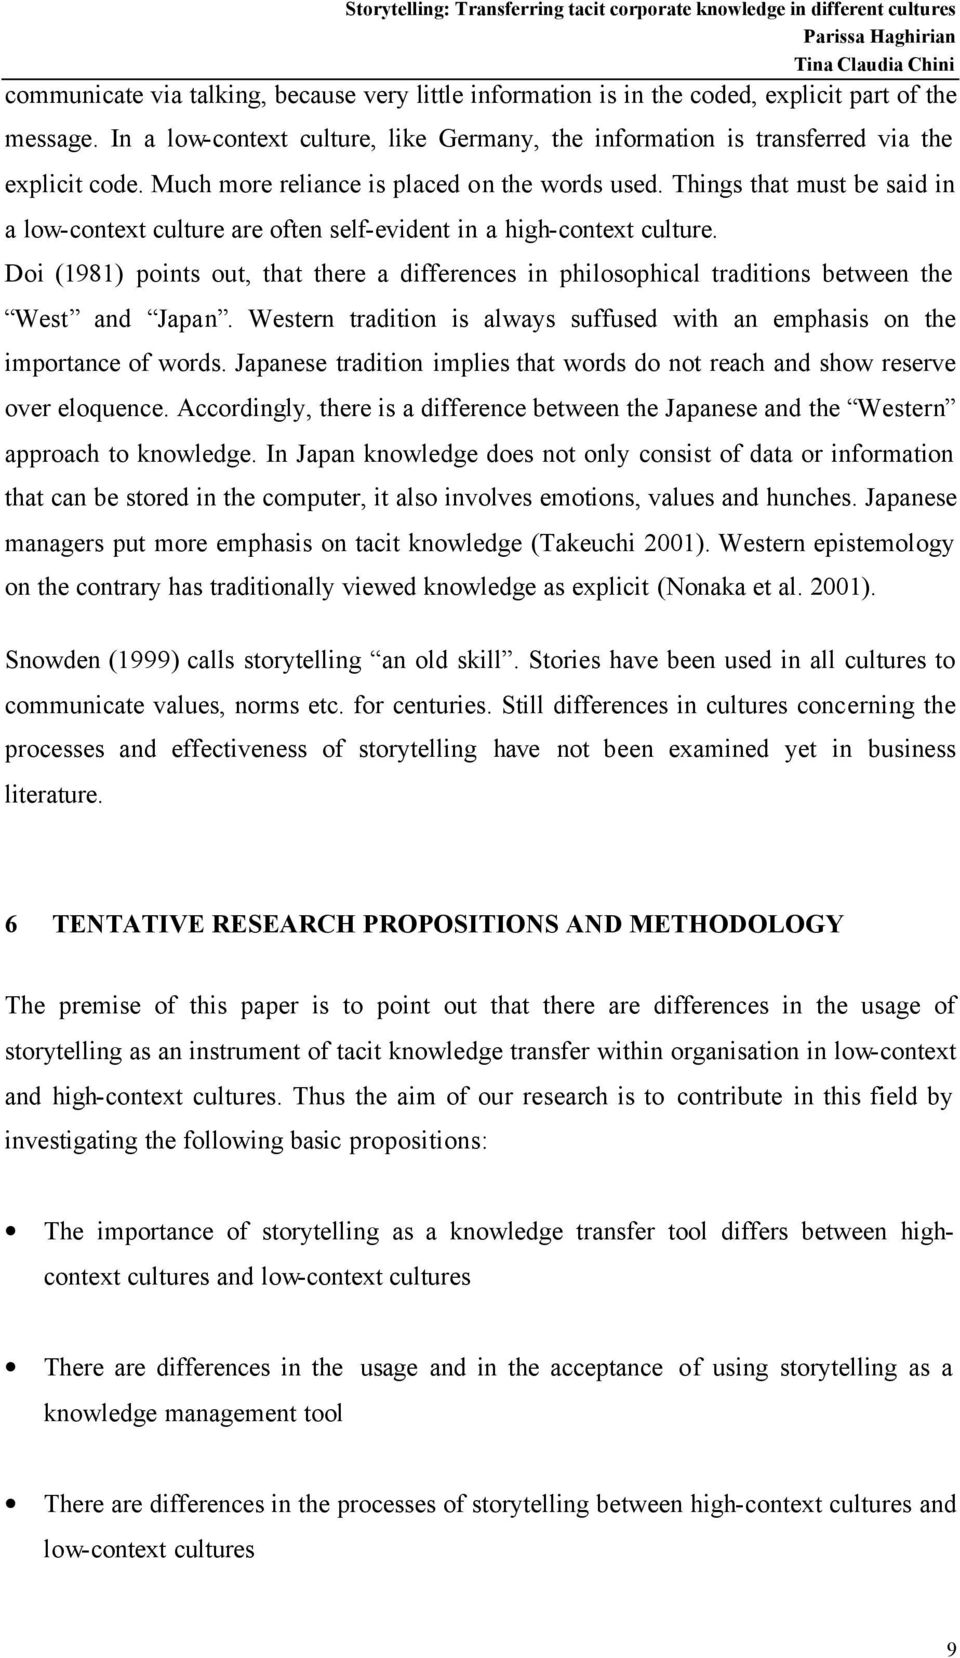 Doi (1981) points out, that there a differences in philosophical traditions between the West and Japan. Western tradition is always suffused with an emphasis on the importance of words.